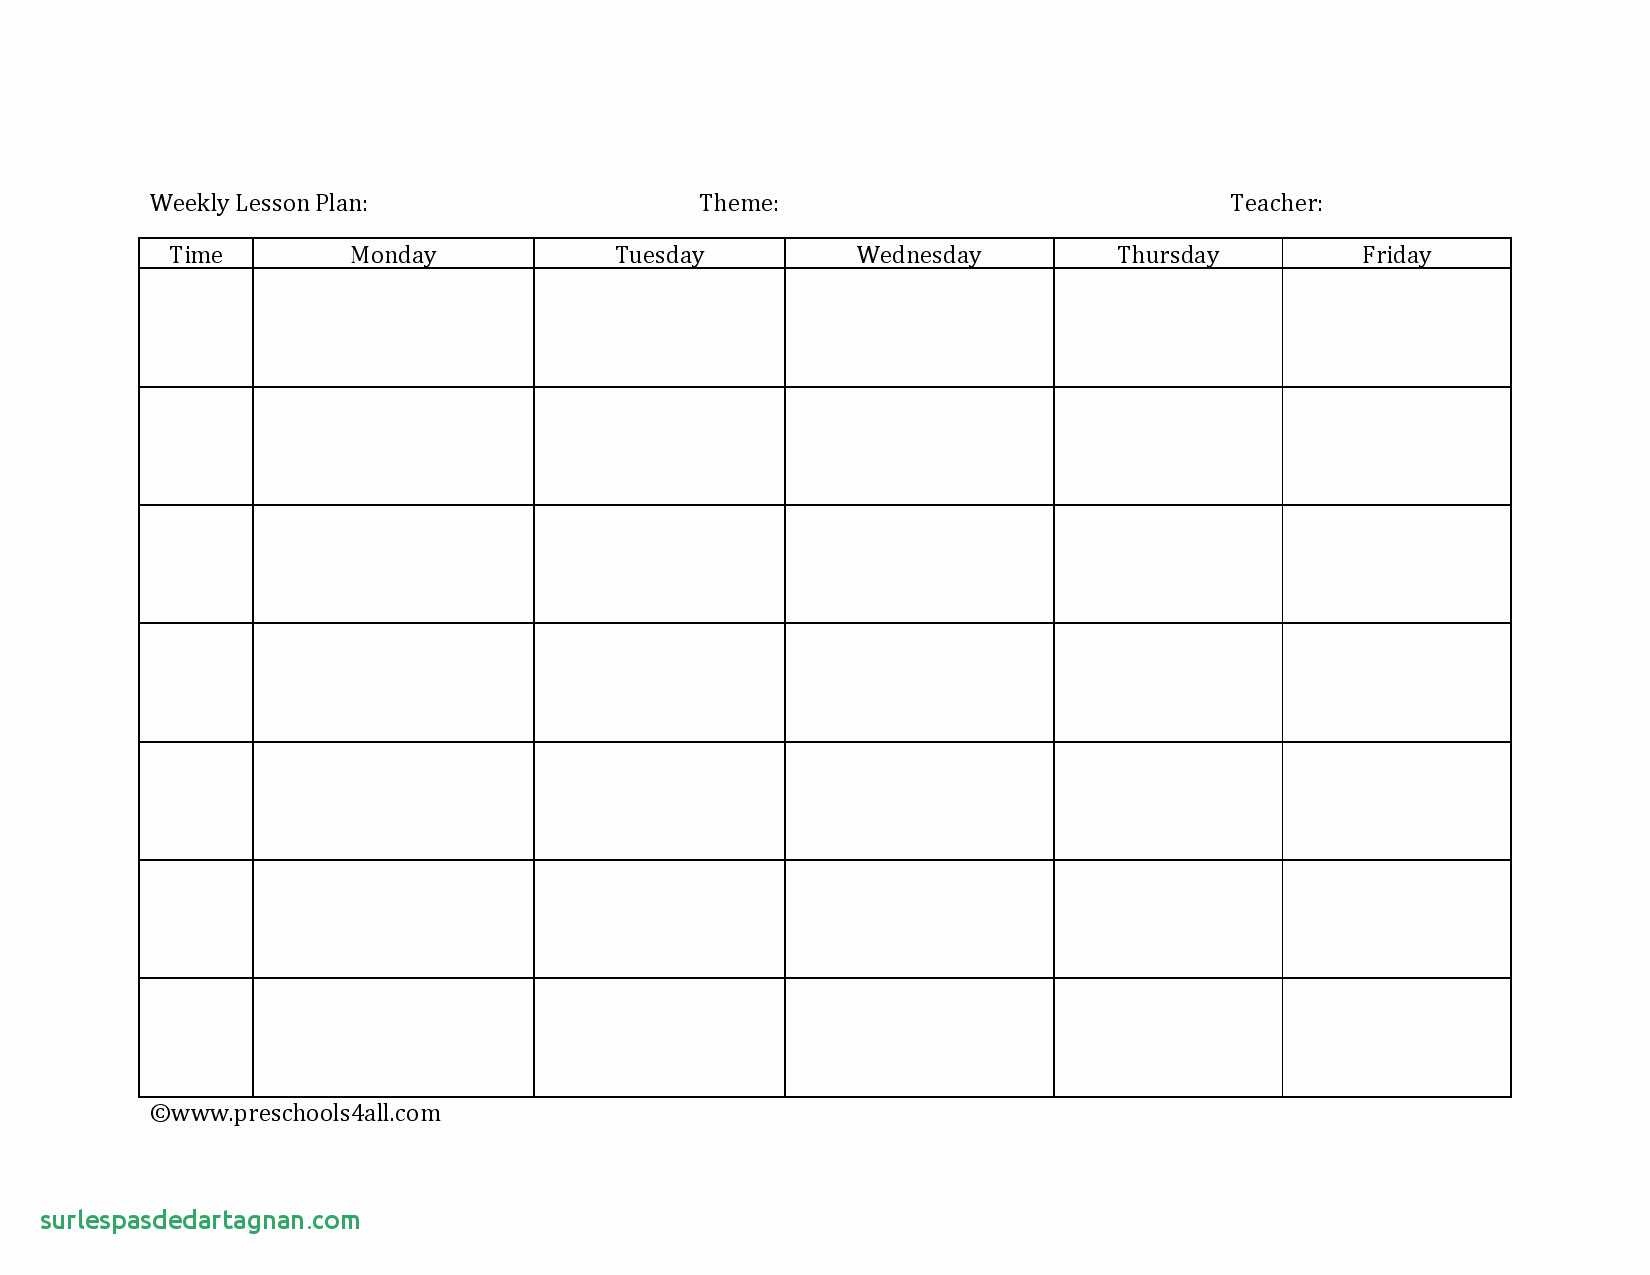 020 Pre K Lesson Plan Template Weekly Teacher Planner Lovely Daycare - Free Printable Daycare Menus